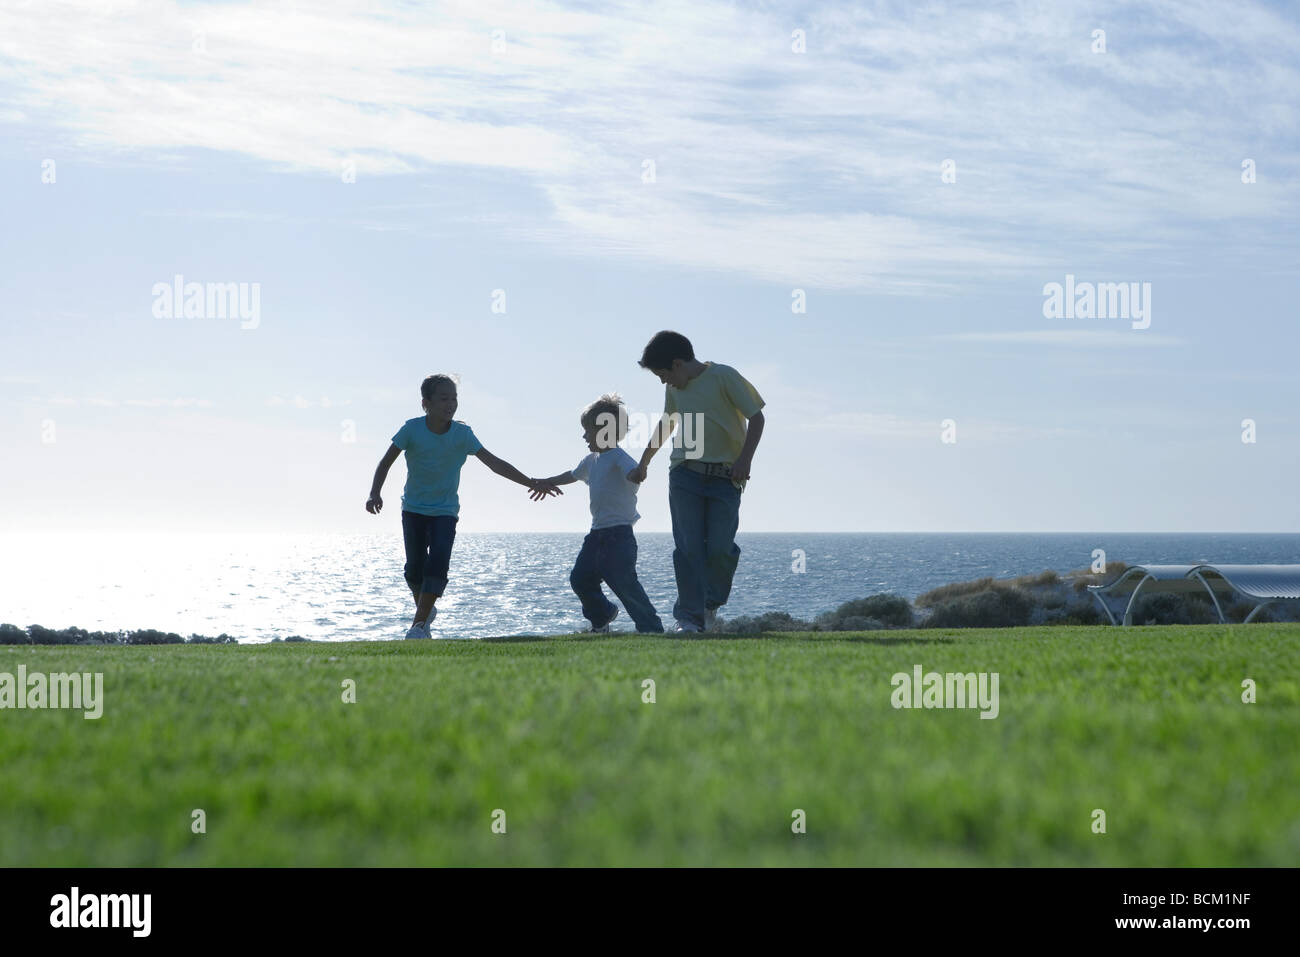 Three children running across grass, holding hands, sea in background, full length - Stock Image